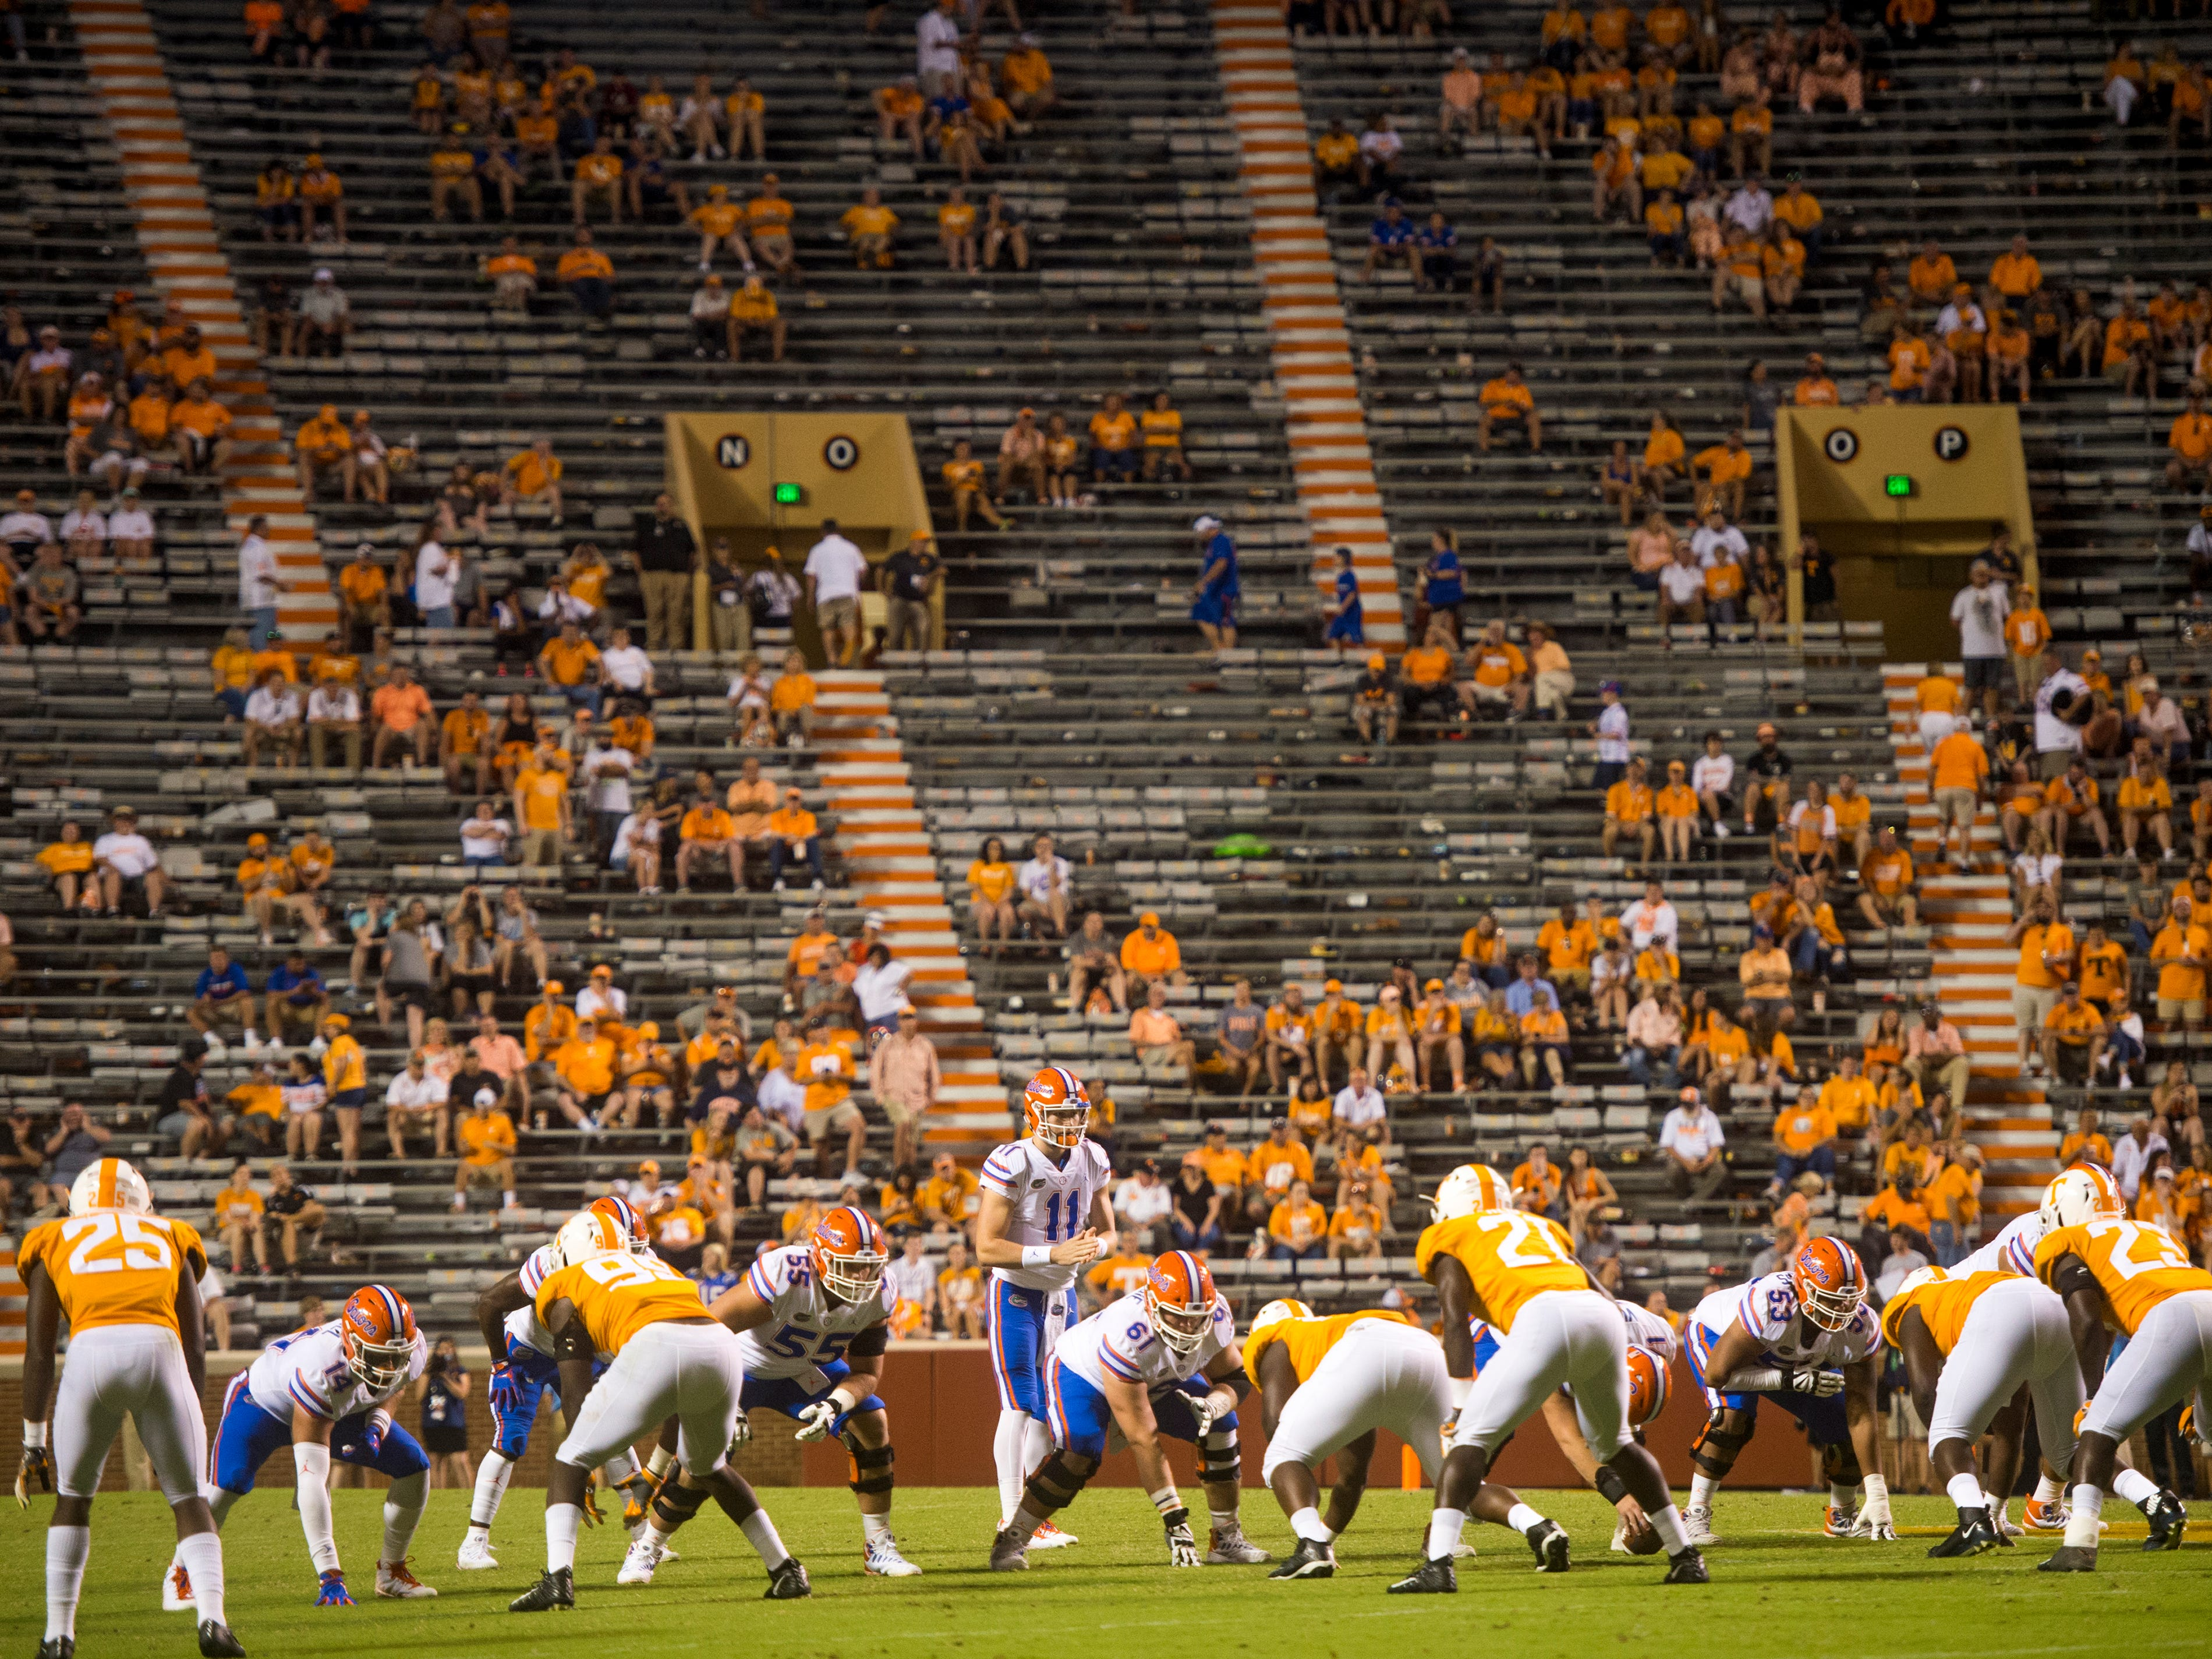 Empty stands during the Tennessee Volunteers' game against Florida in Neyland Stadium on Saturday, Sept. 22, 2018.